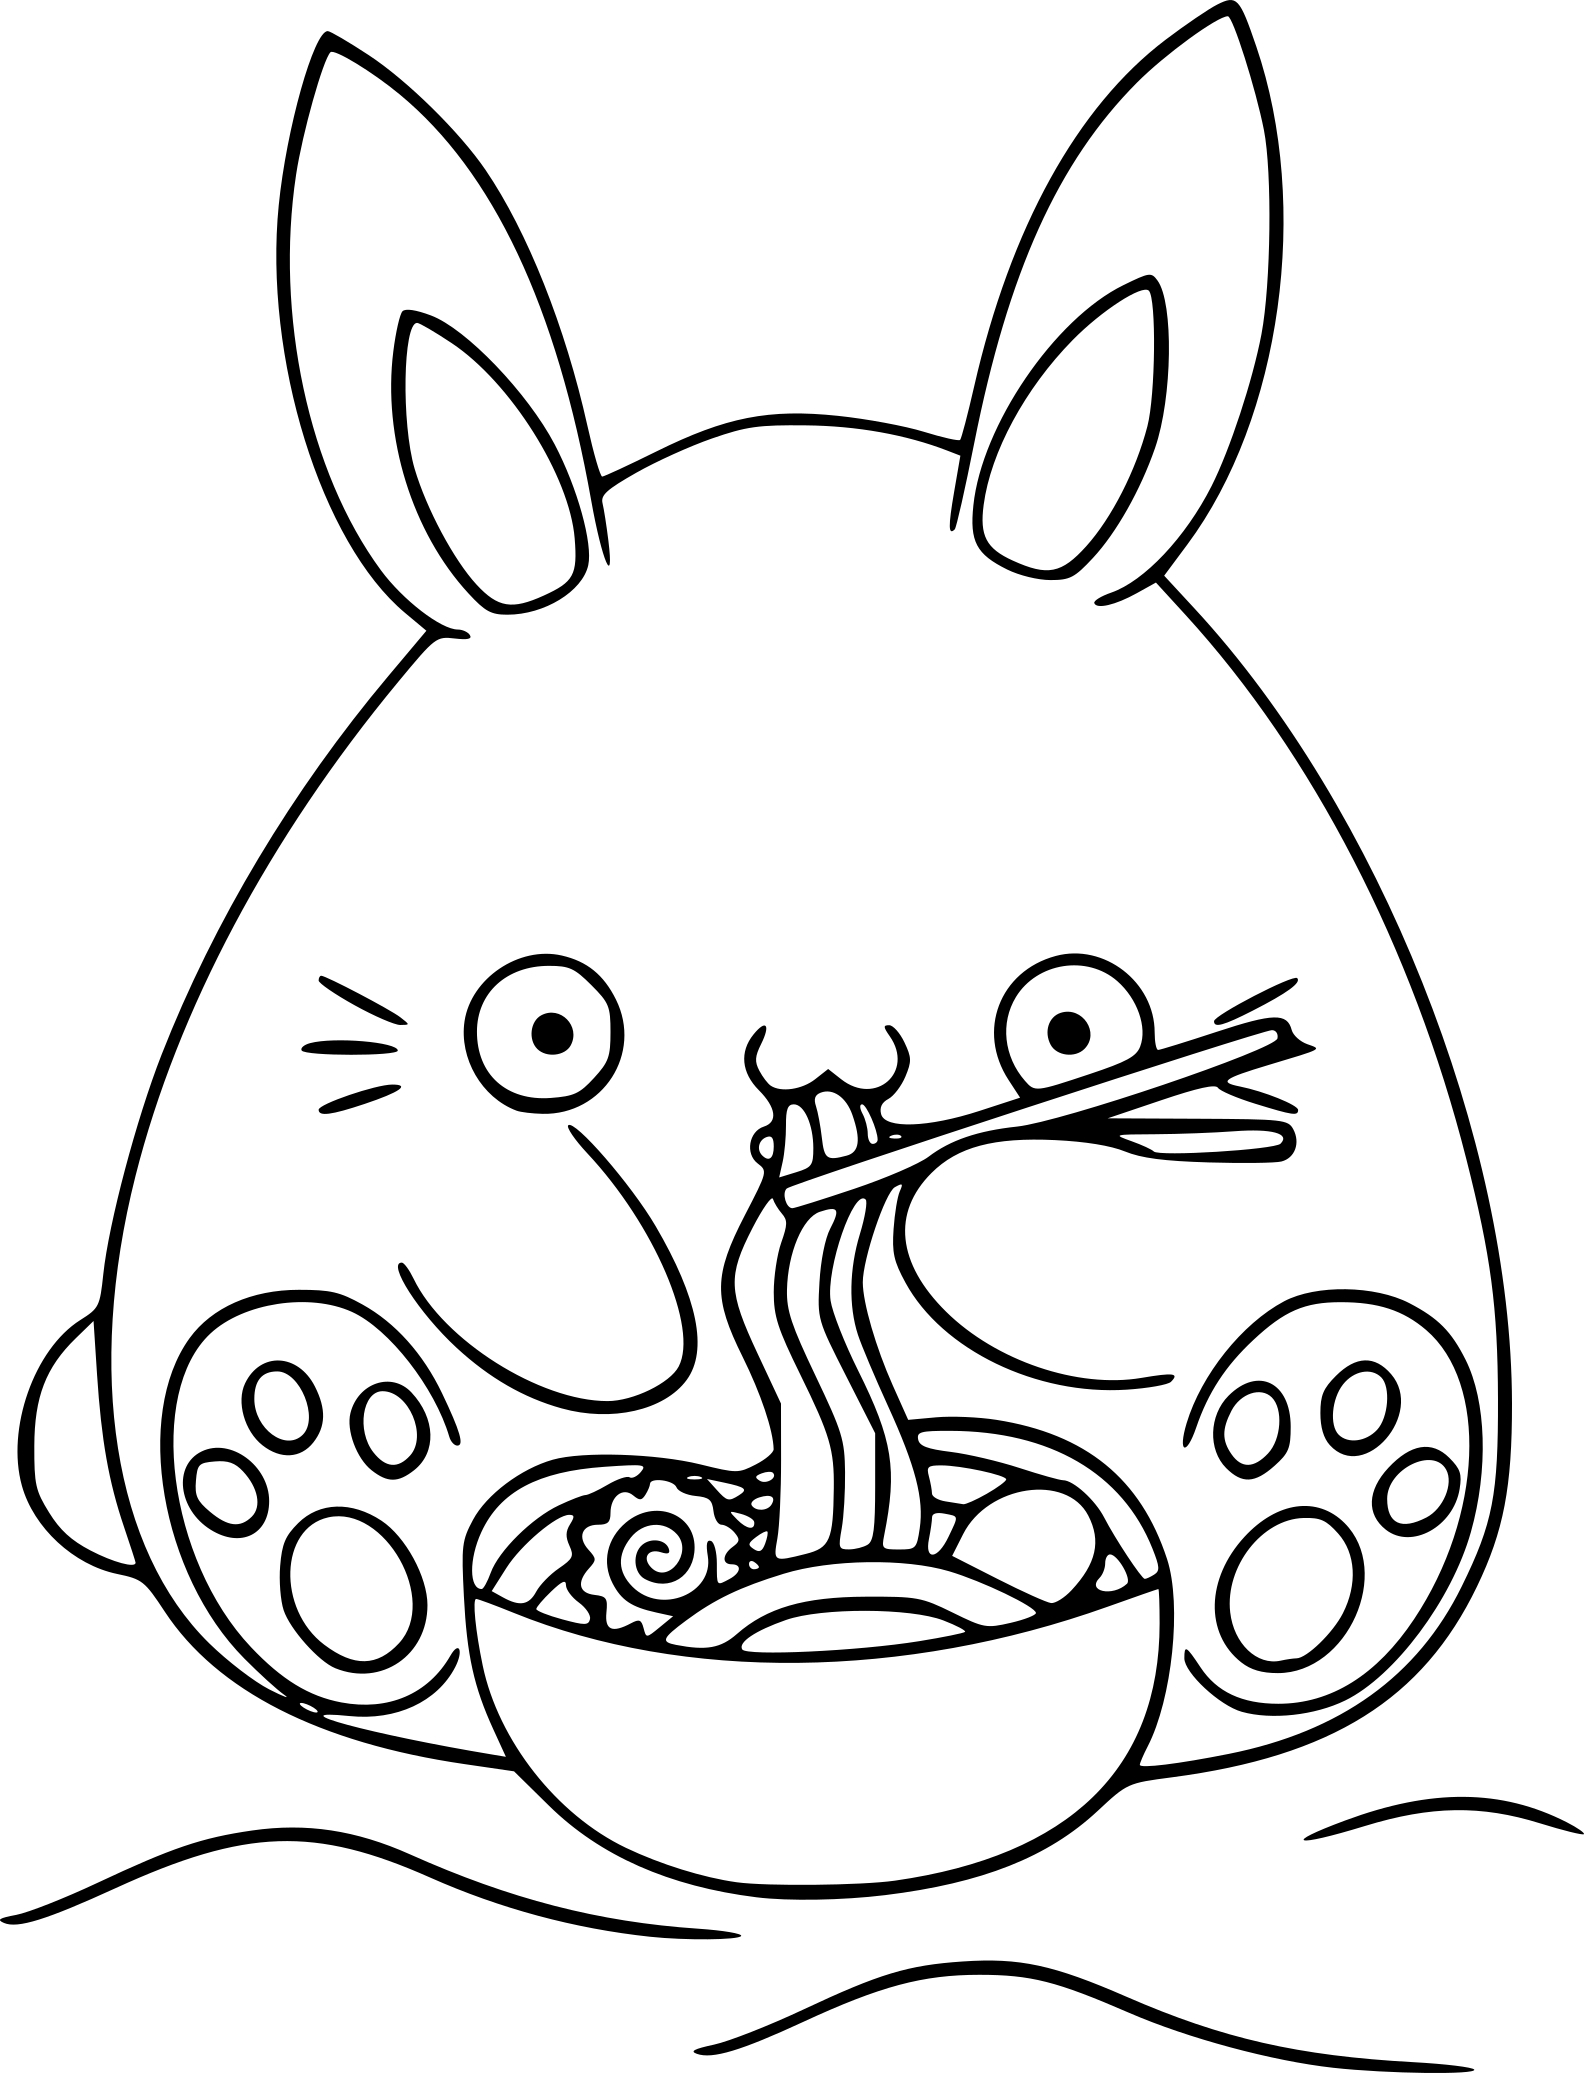 Kawaii Coloring Pages Free Download On Clipartmag